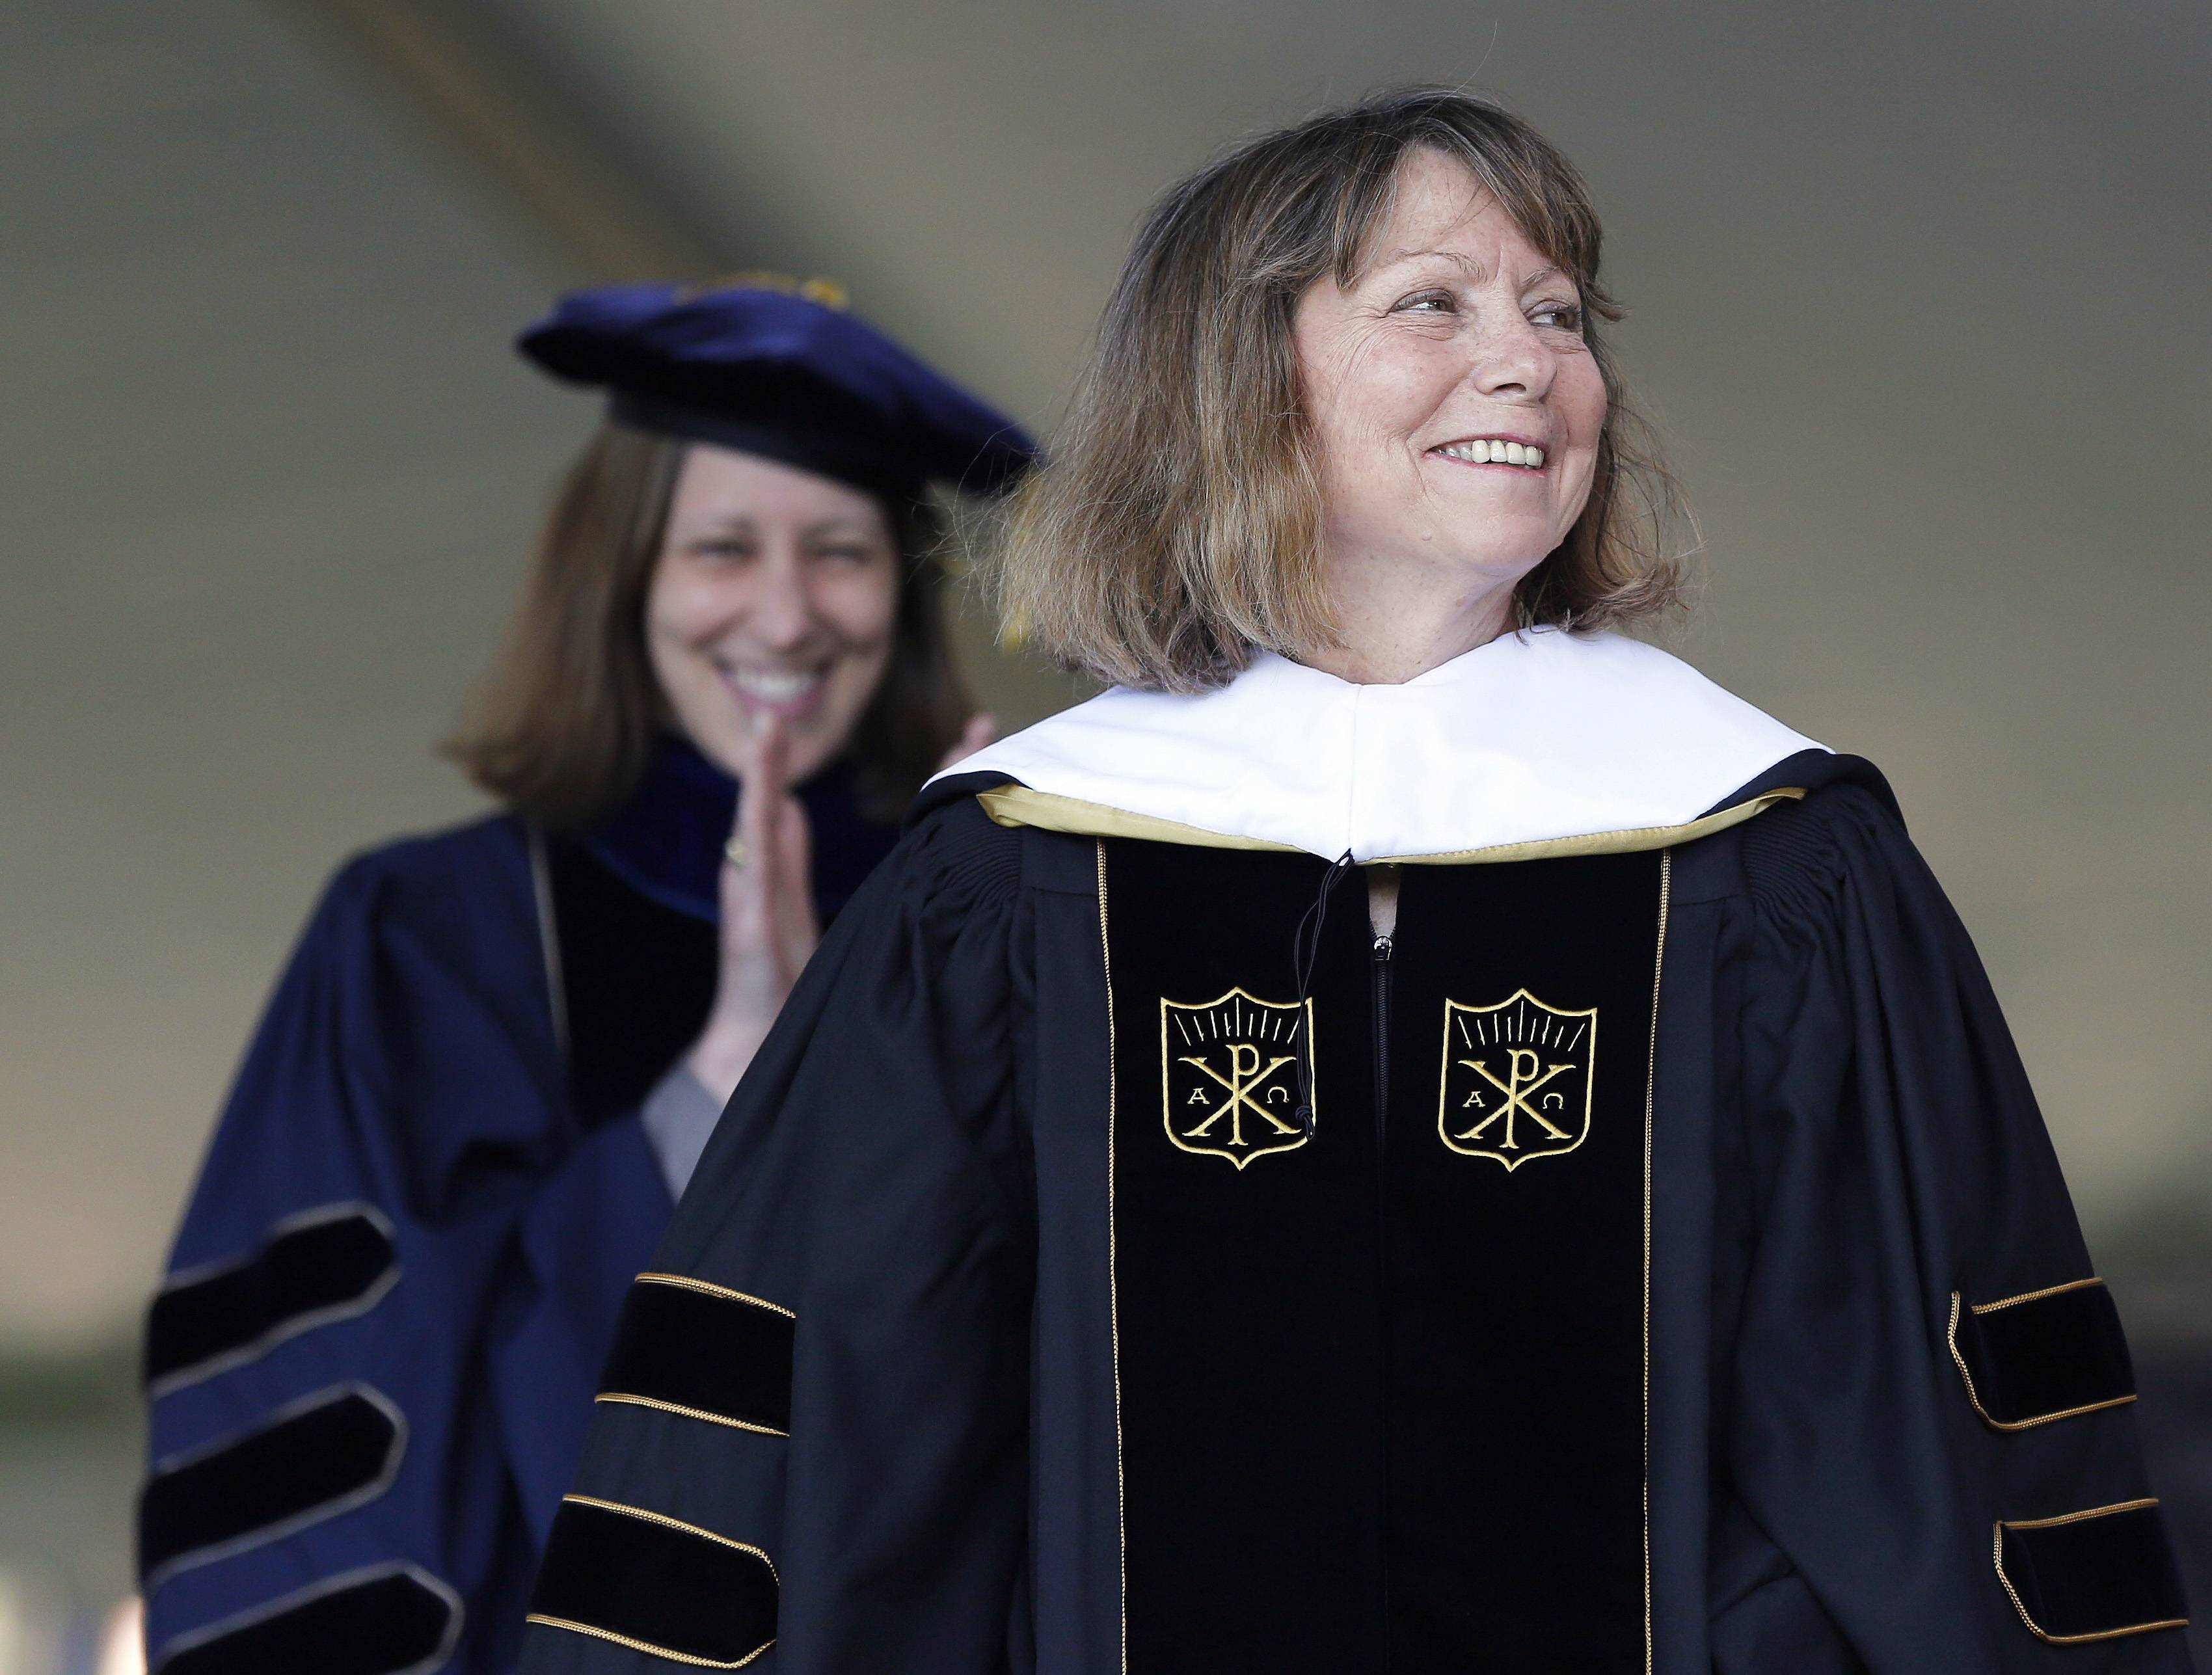 Jill Abramson, former executive editor of The New York Times, receives an honorary Doctor of Humane Letters degree during the commencement ceremony Monday, May 19, 2014 at Wake Forest University in Winston-Salem, N.C. It was Abramson's first public appearance since her dismissal from The New York Times.